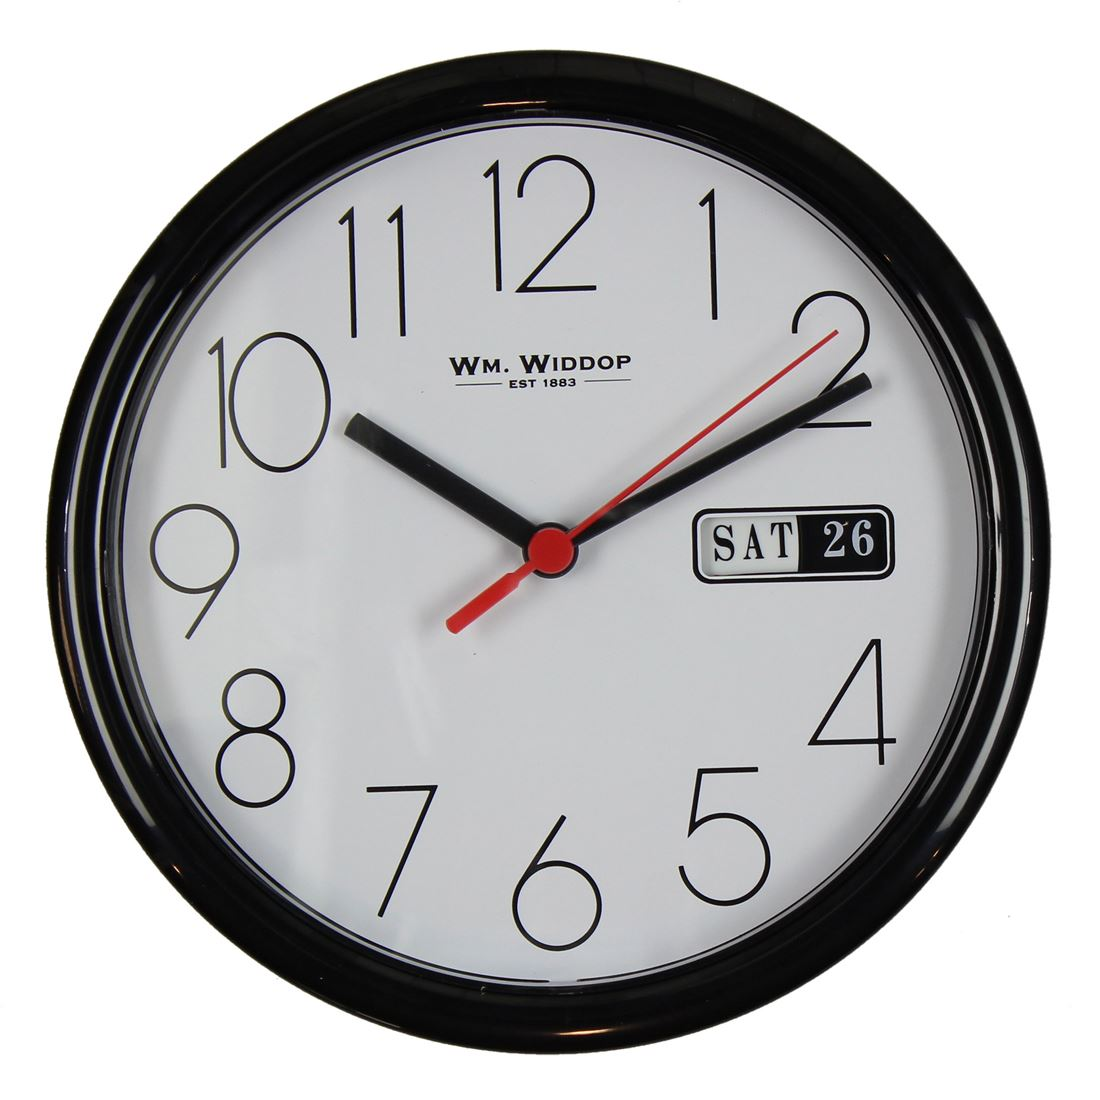 Wmwiddop simple classic 22cm wall clock with day date display an office essential this classic style black clock with white face plus day and date details will keep your day on track black numbers black hour and amipublicfo Images